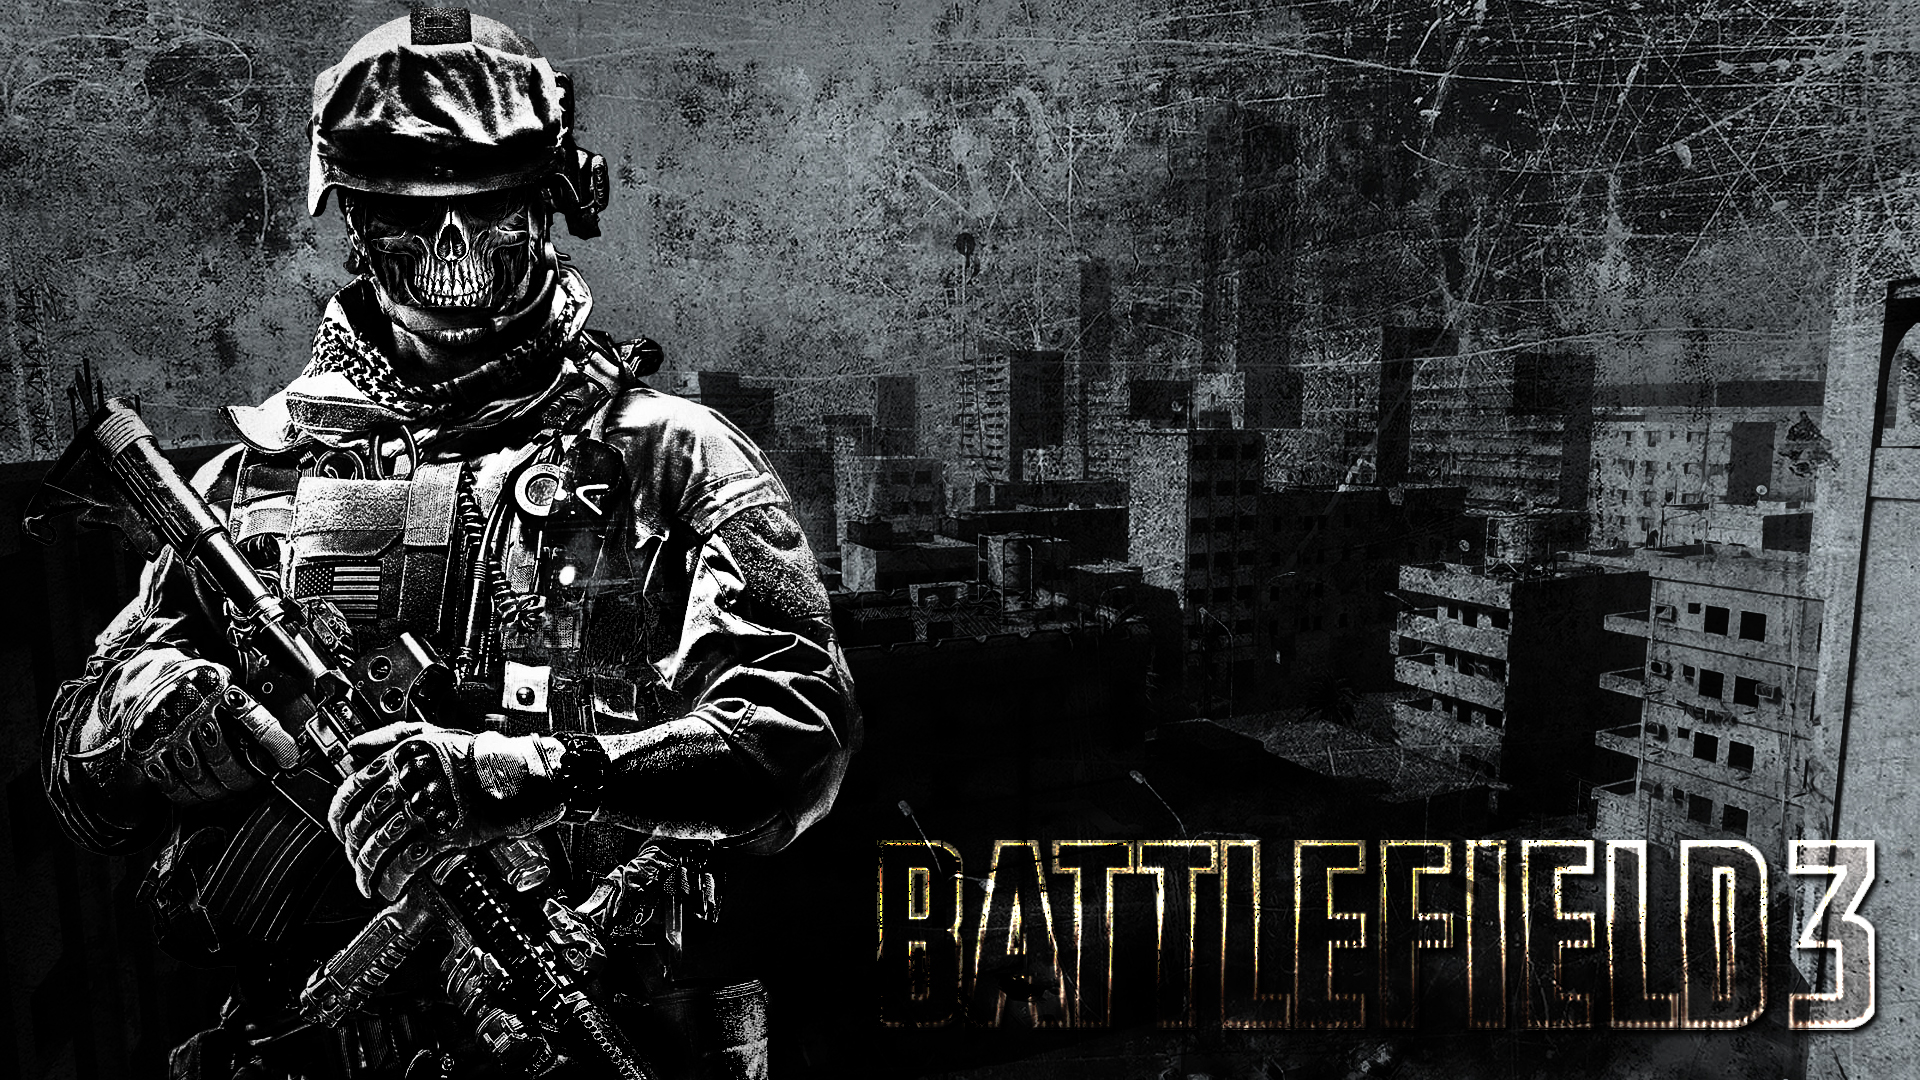 Battlefield 3 Hd Wallpaper By Freiheitskampfer On Deviantart